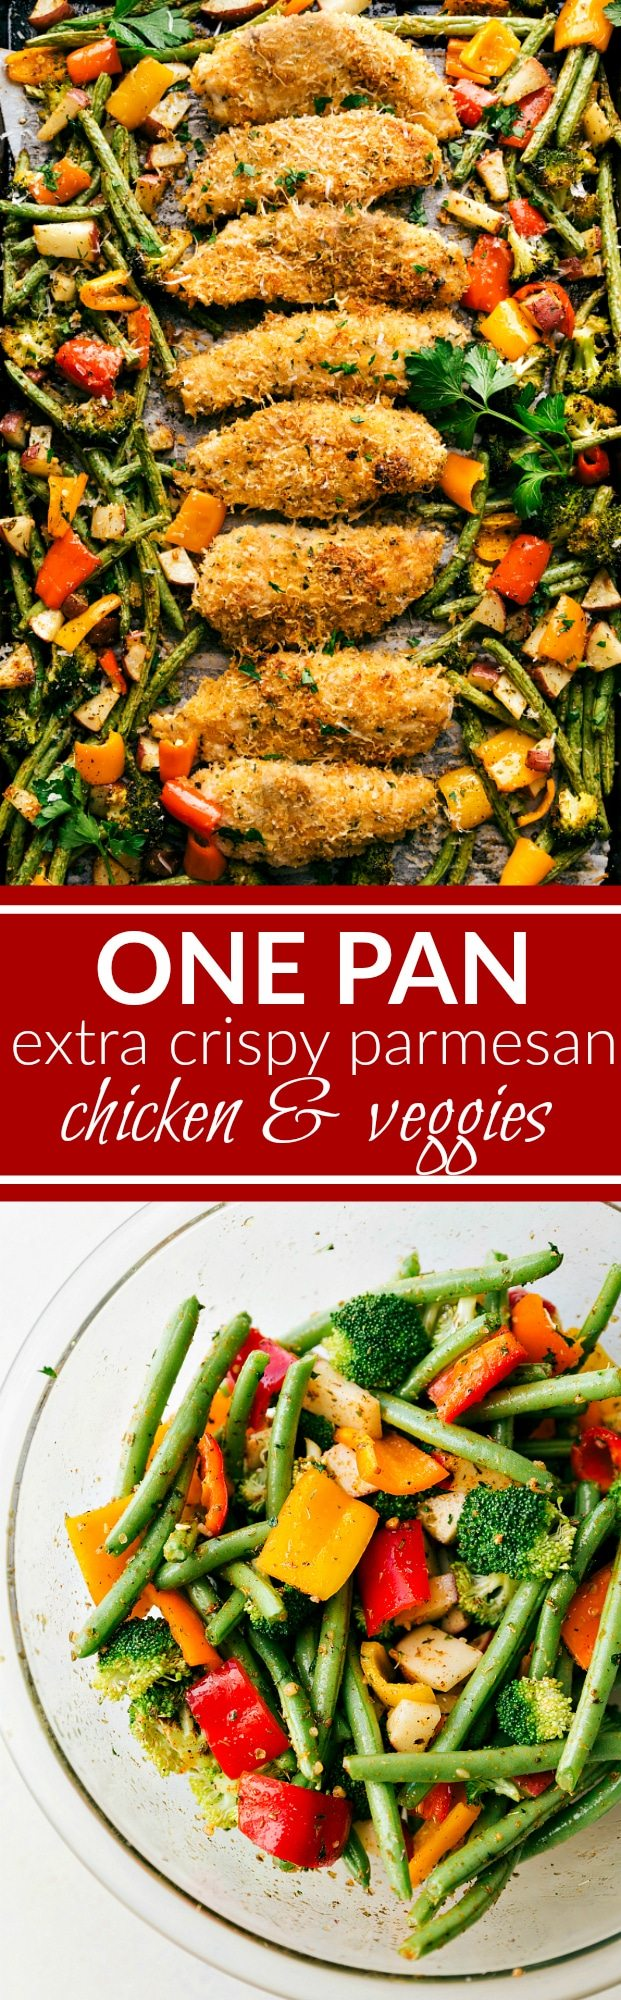 Baked EXTRA CRISPYparmesan chicken and veggies -- dinner made on one pan and packed with flavor! Sure to be a hit with the entire family! via chelseasmessyapron.com